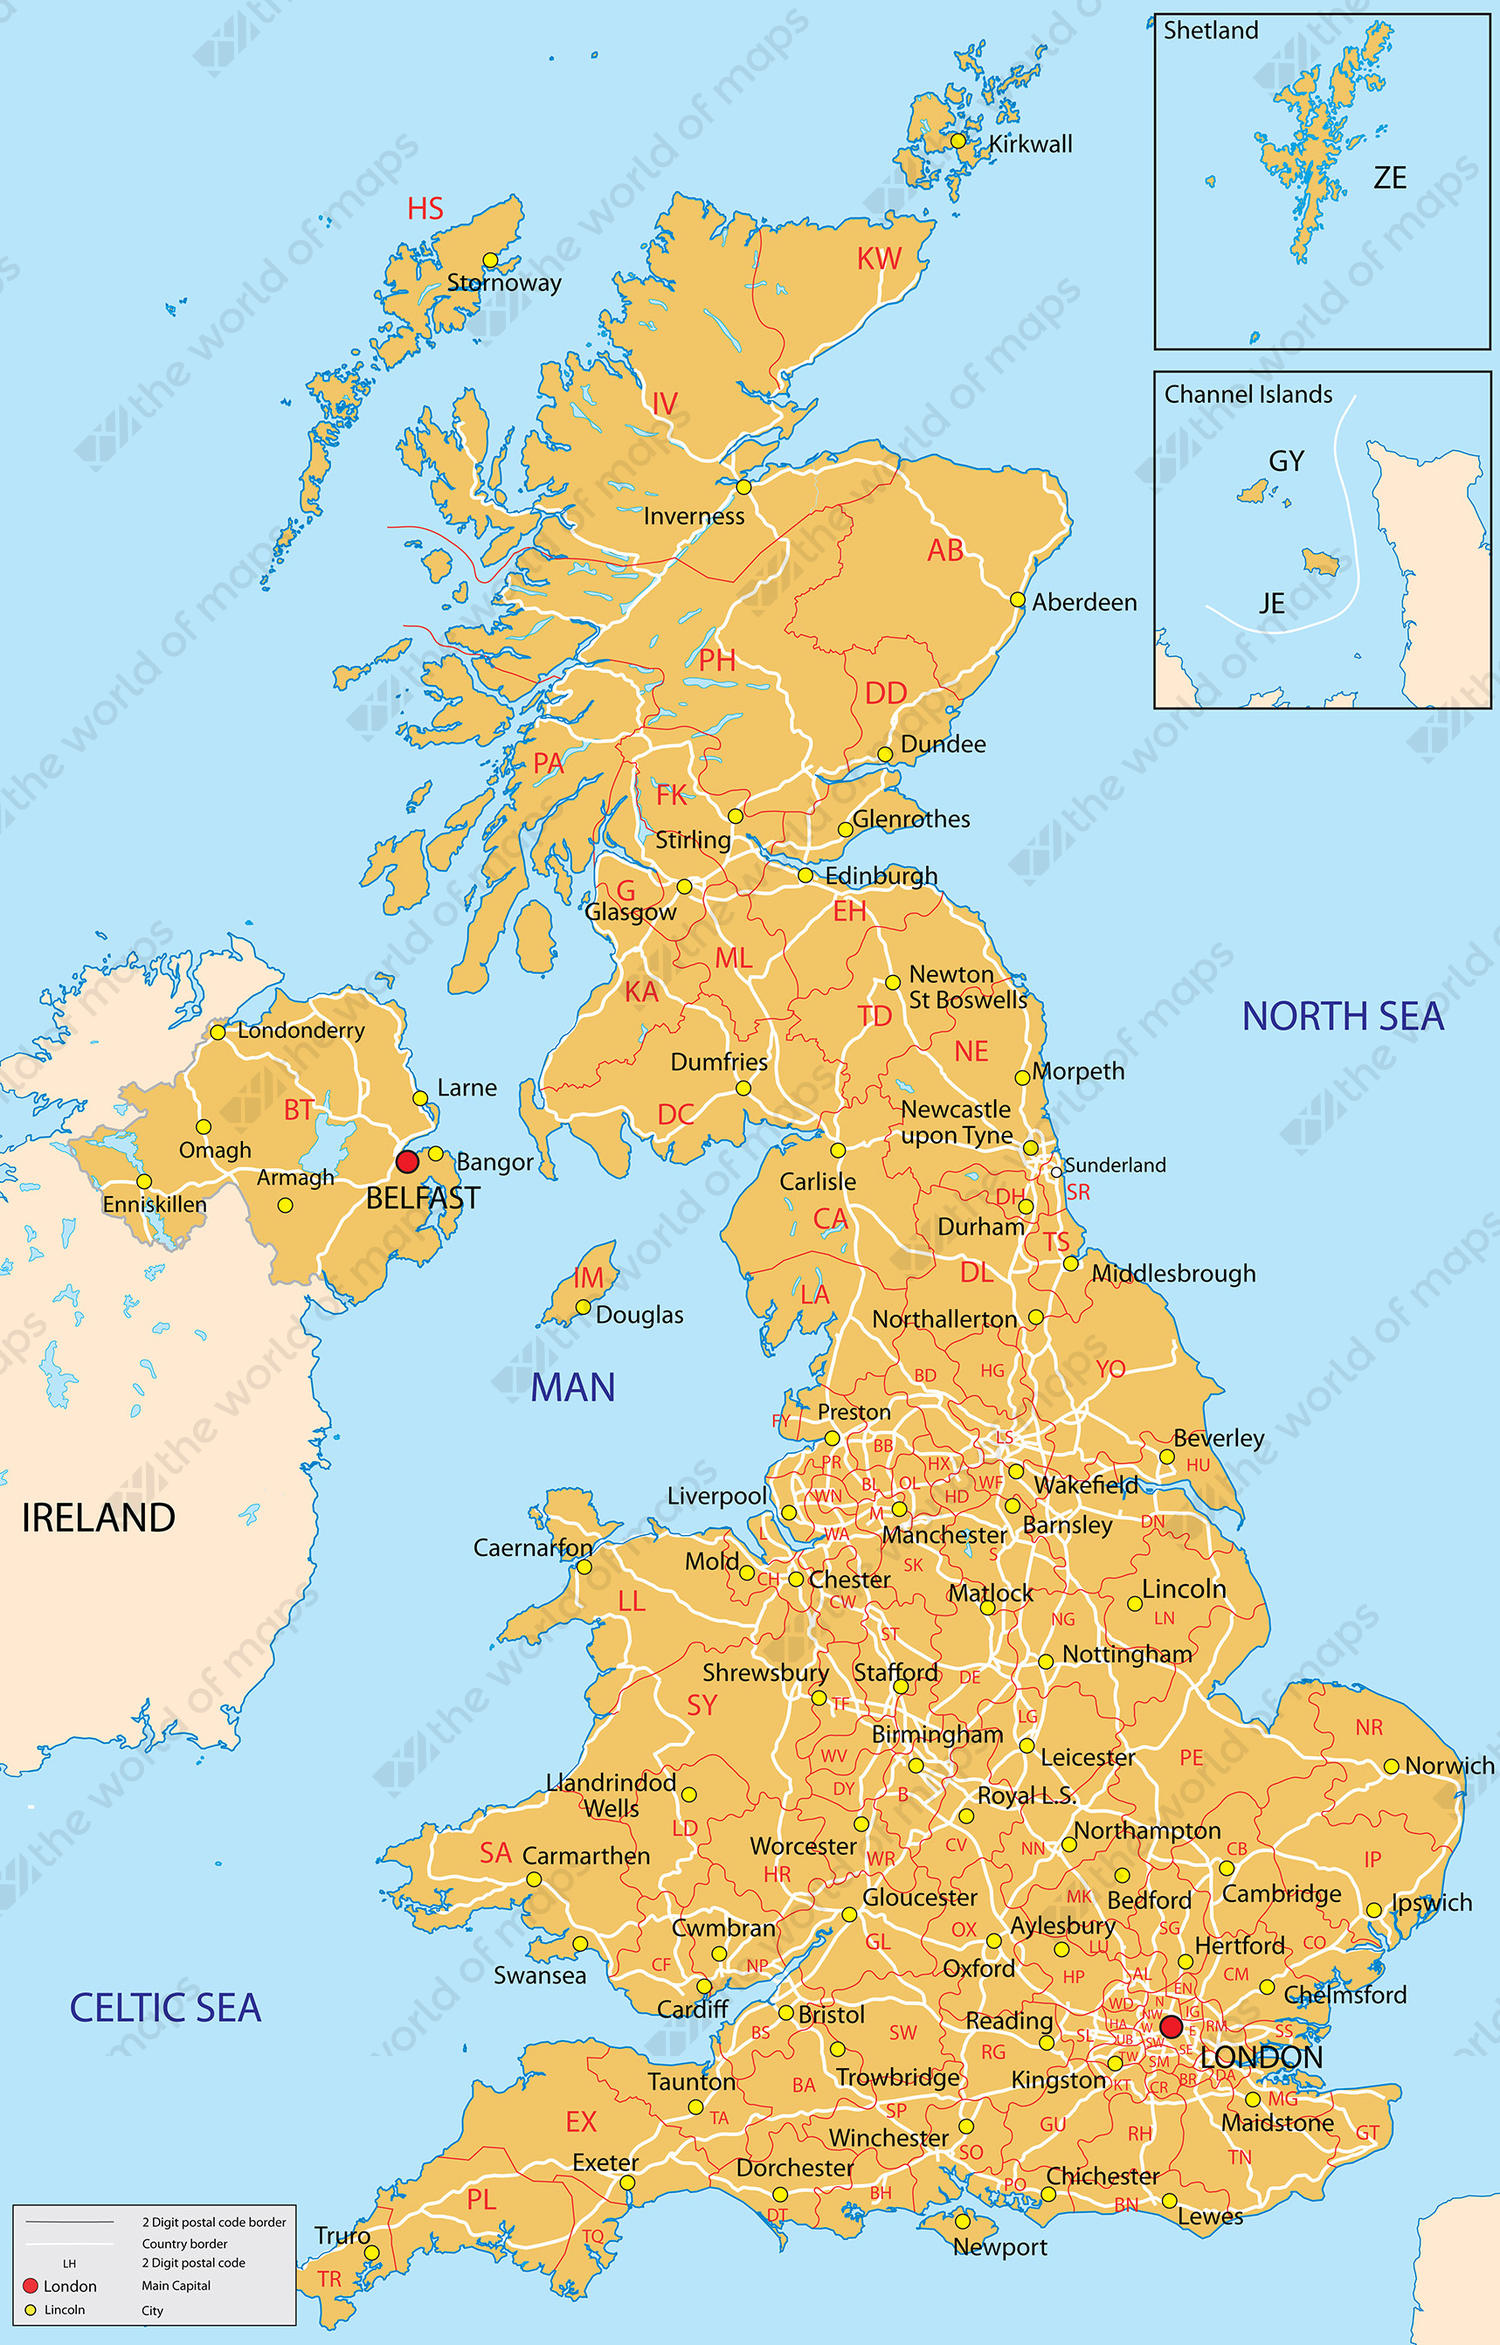 Digital postcode map united kingdom 2 digit 212 the world of digital postcode map united kingdom 2 digit gumiabroncs Images